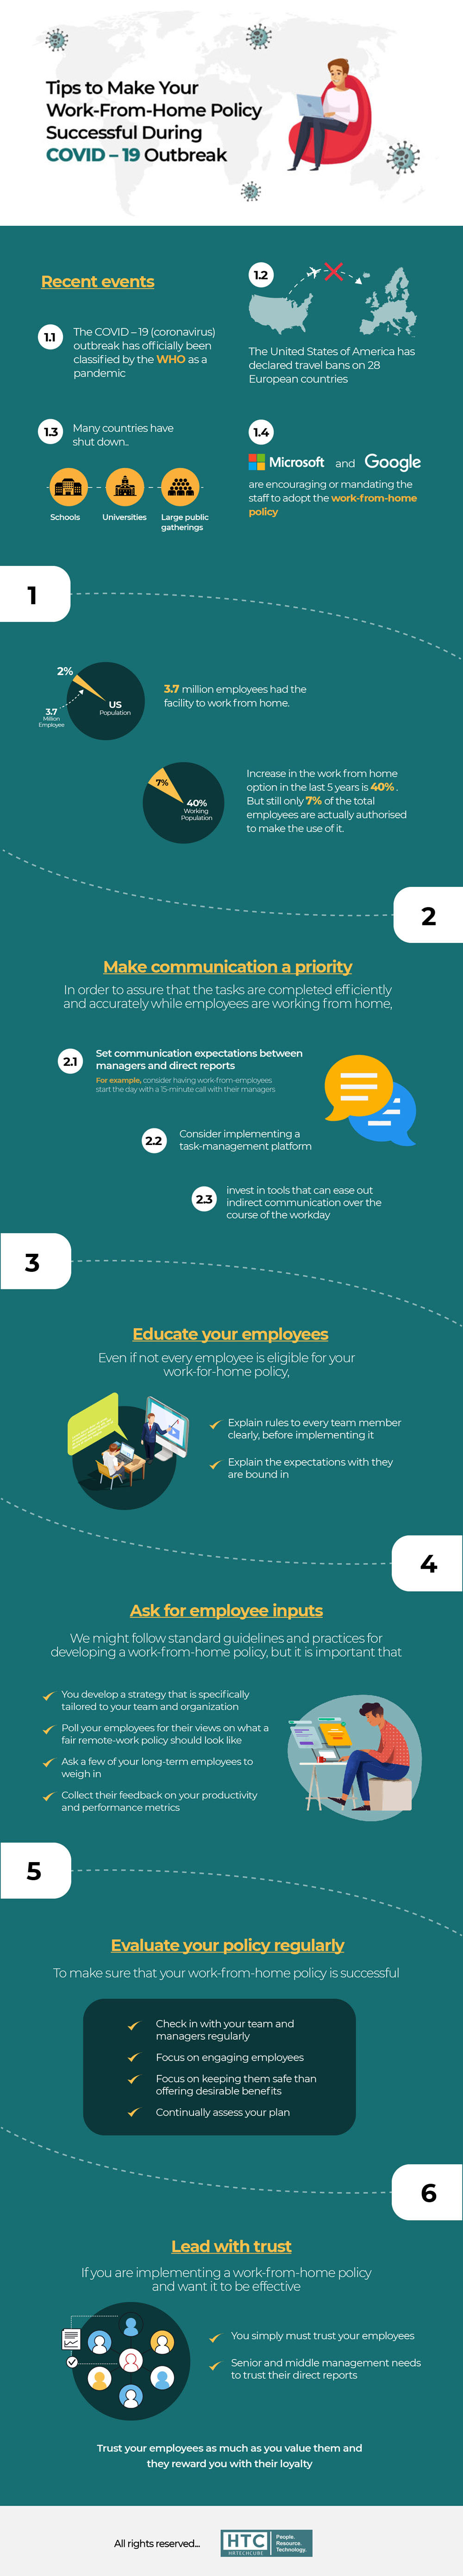 COVID 19 Tips: How To Efficiently Work From Home - Infographic